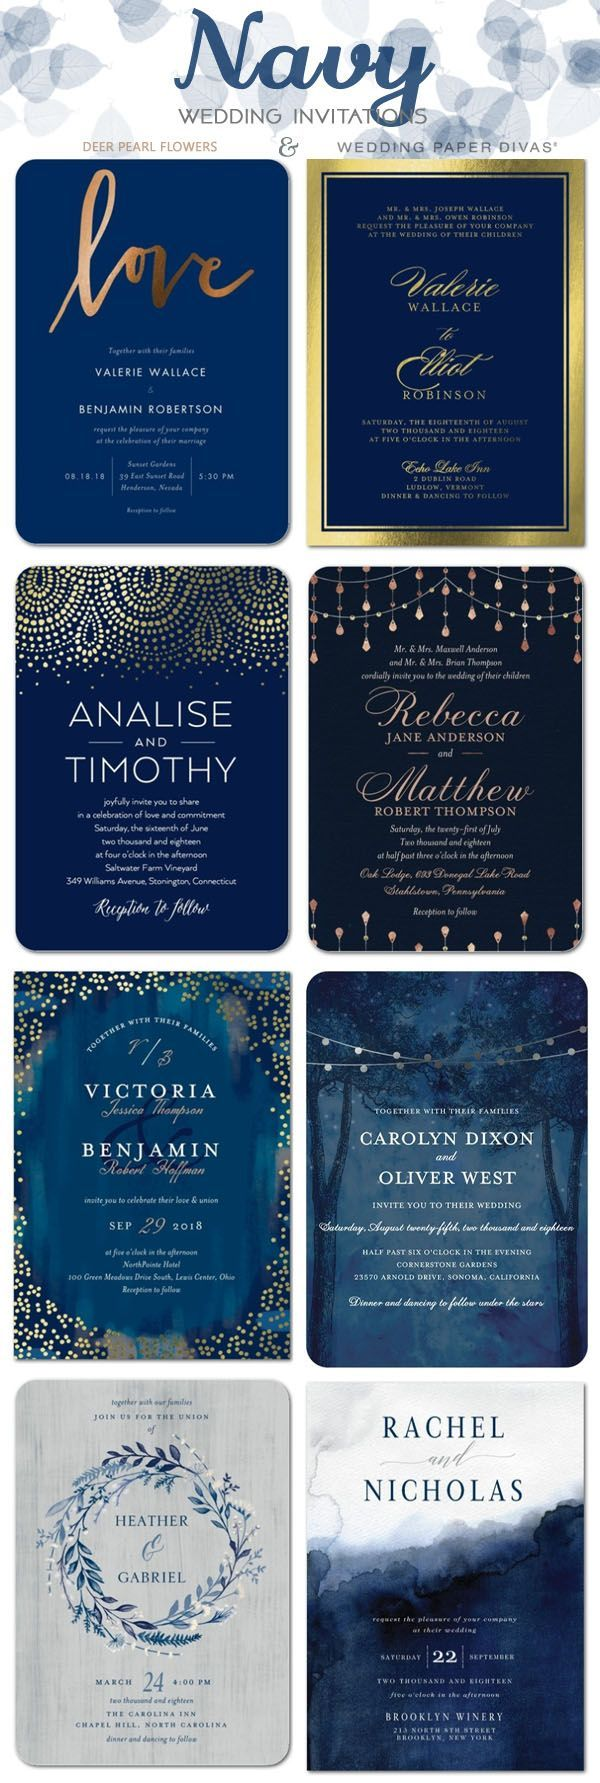 Top 8 Themed Shutterfly Wedding Invitations 393